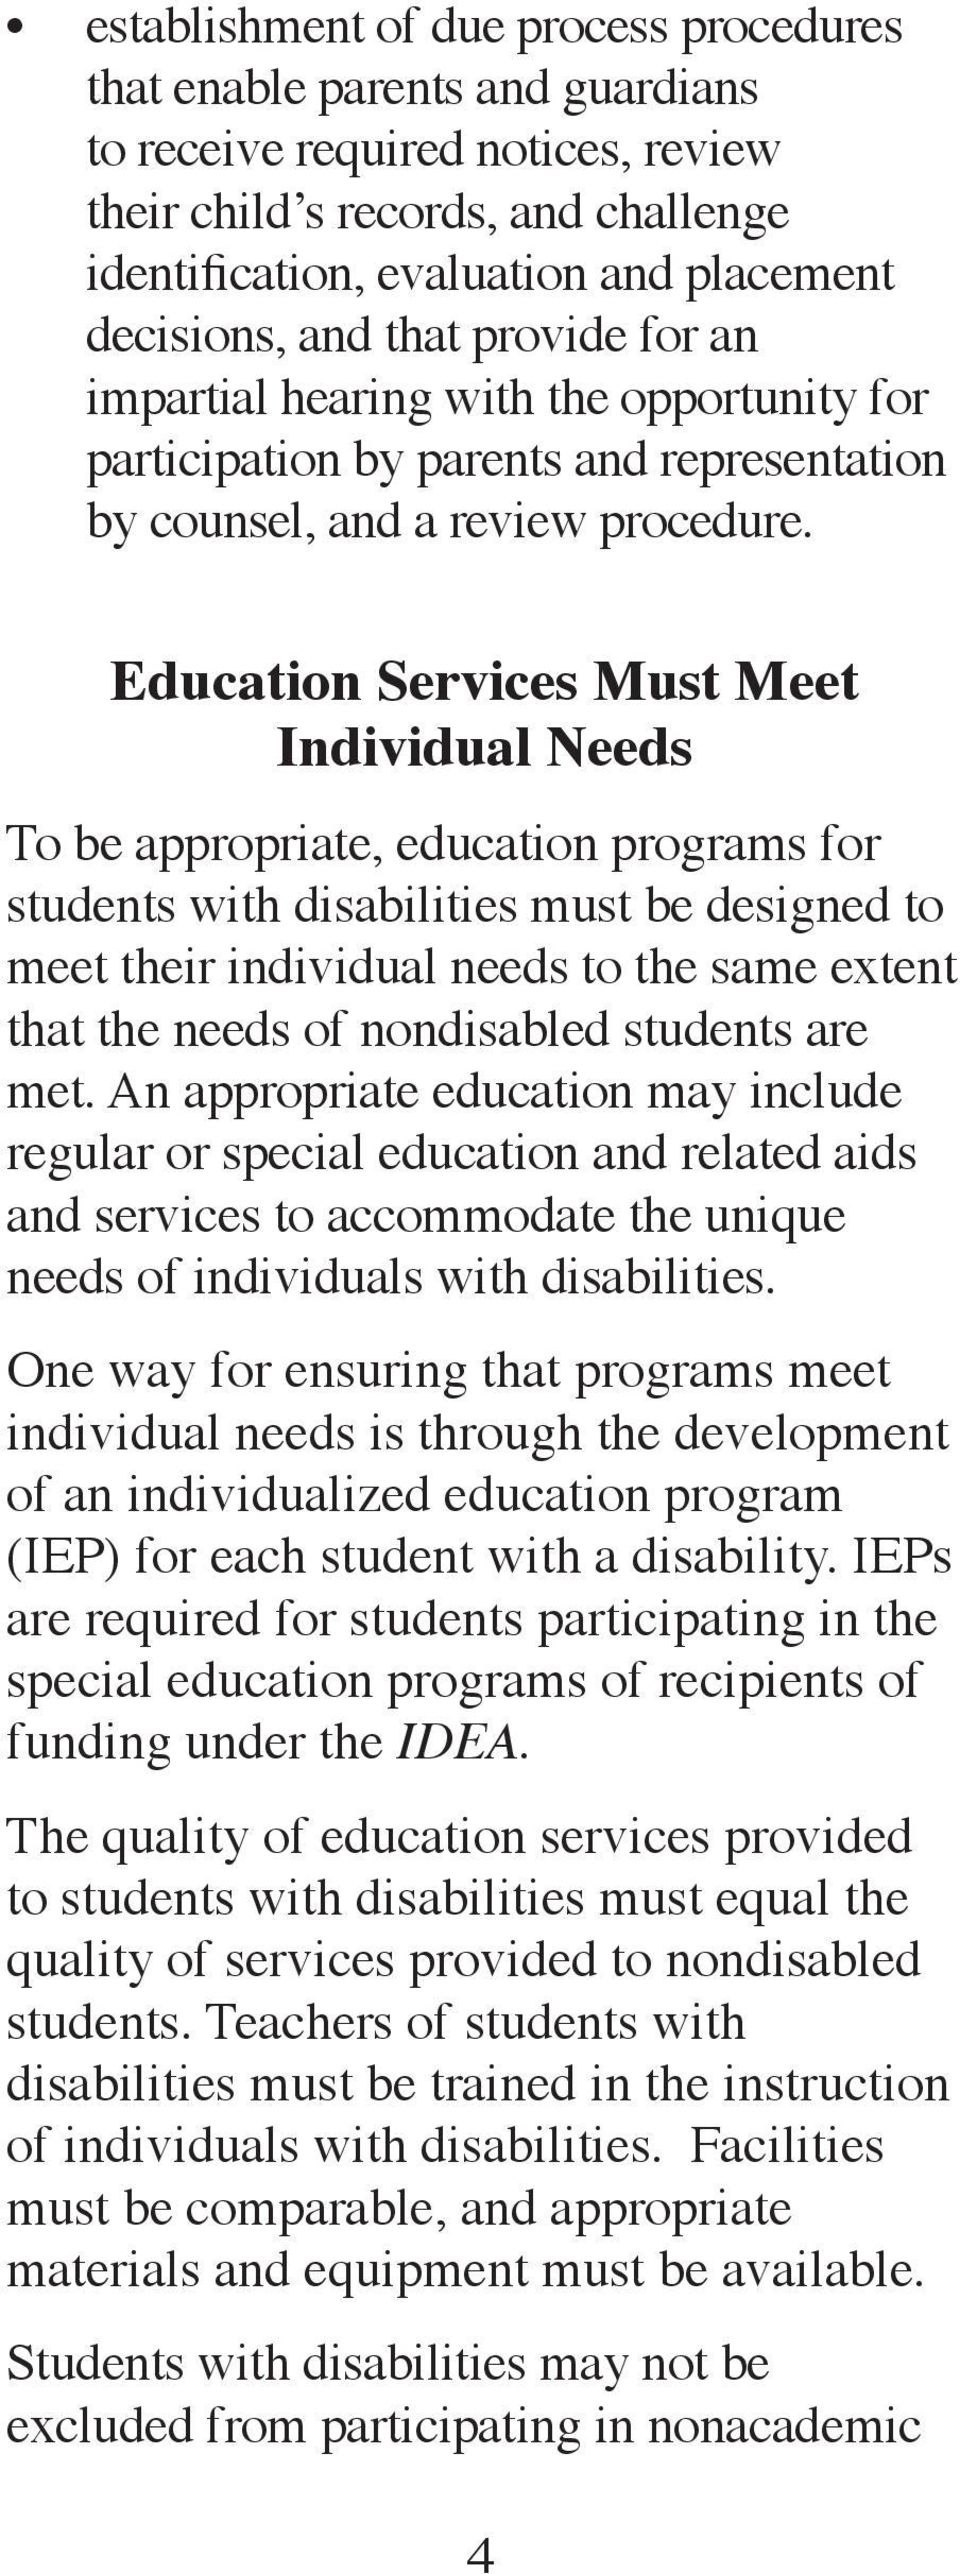 Education Services Must Meet Individual Needs To be appropriate, education programs for students with disabilities must be designed to meet their individual needs to the same extent that the needs of